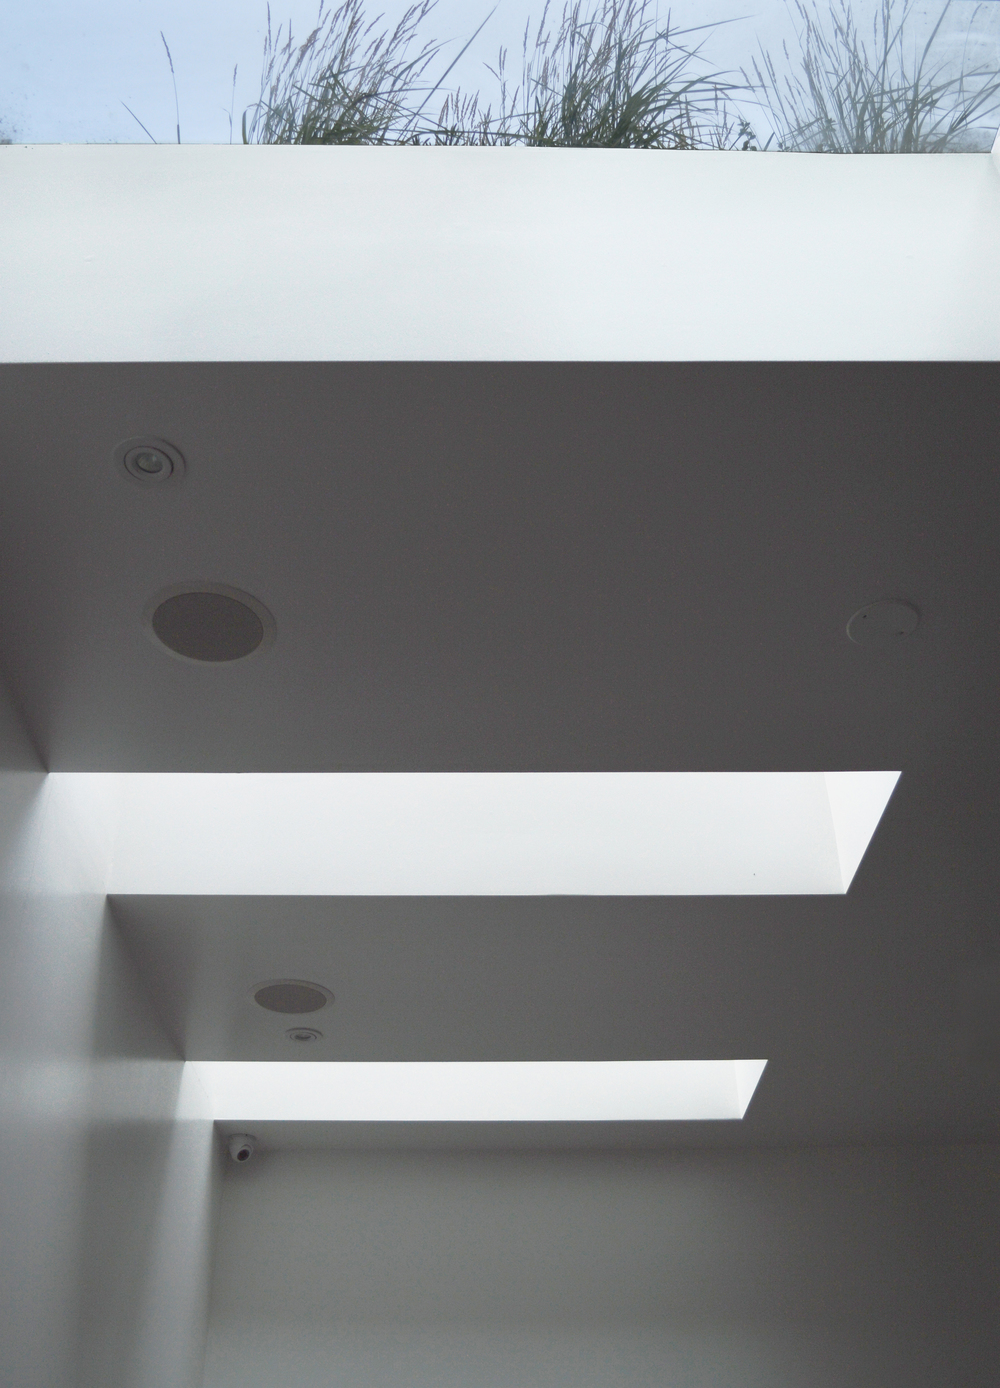 skylight and grass 1.jpg